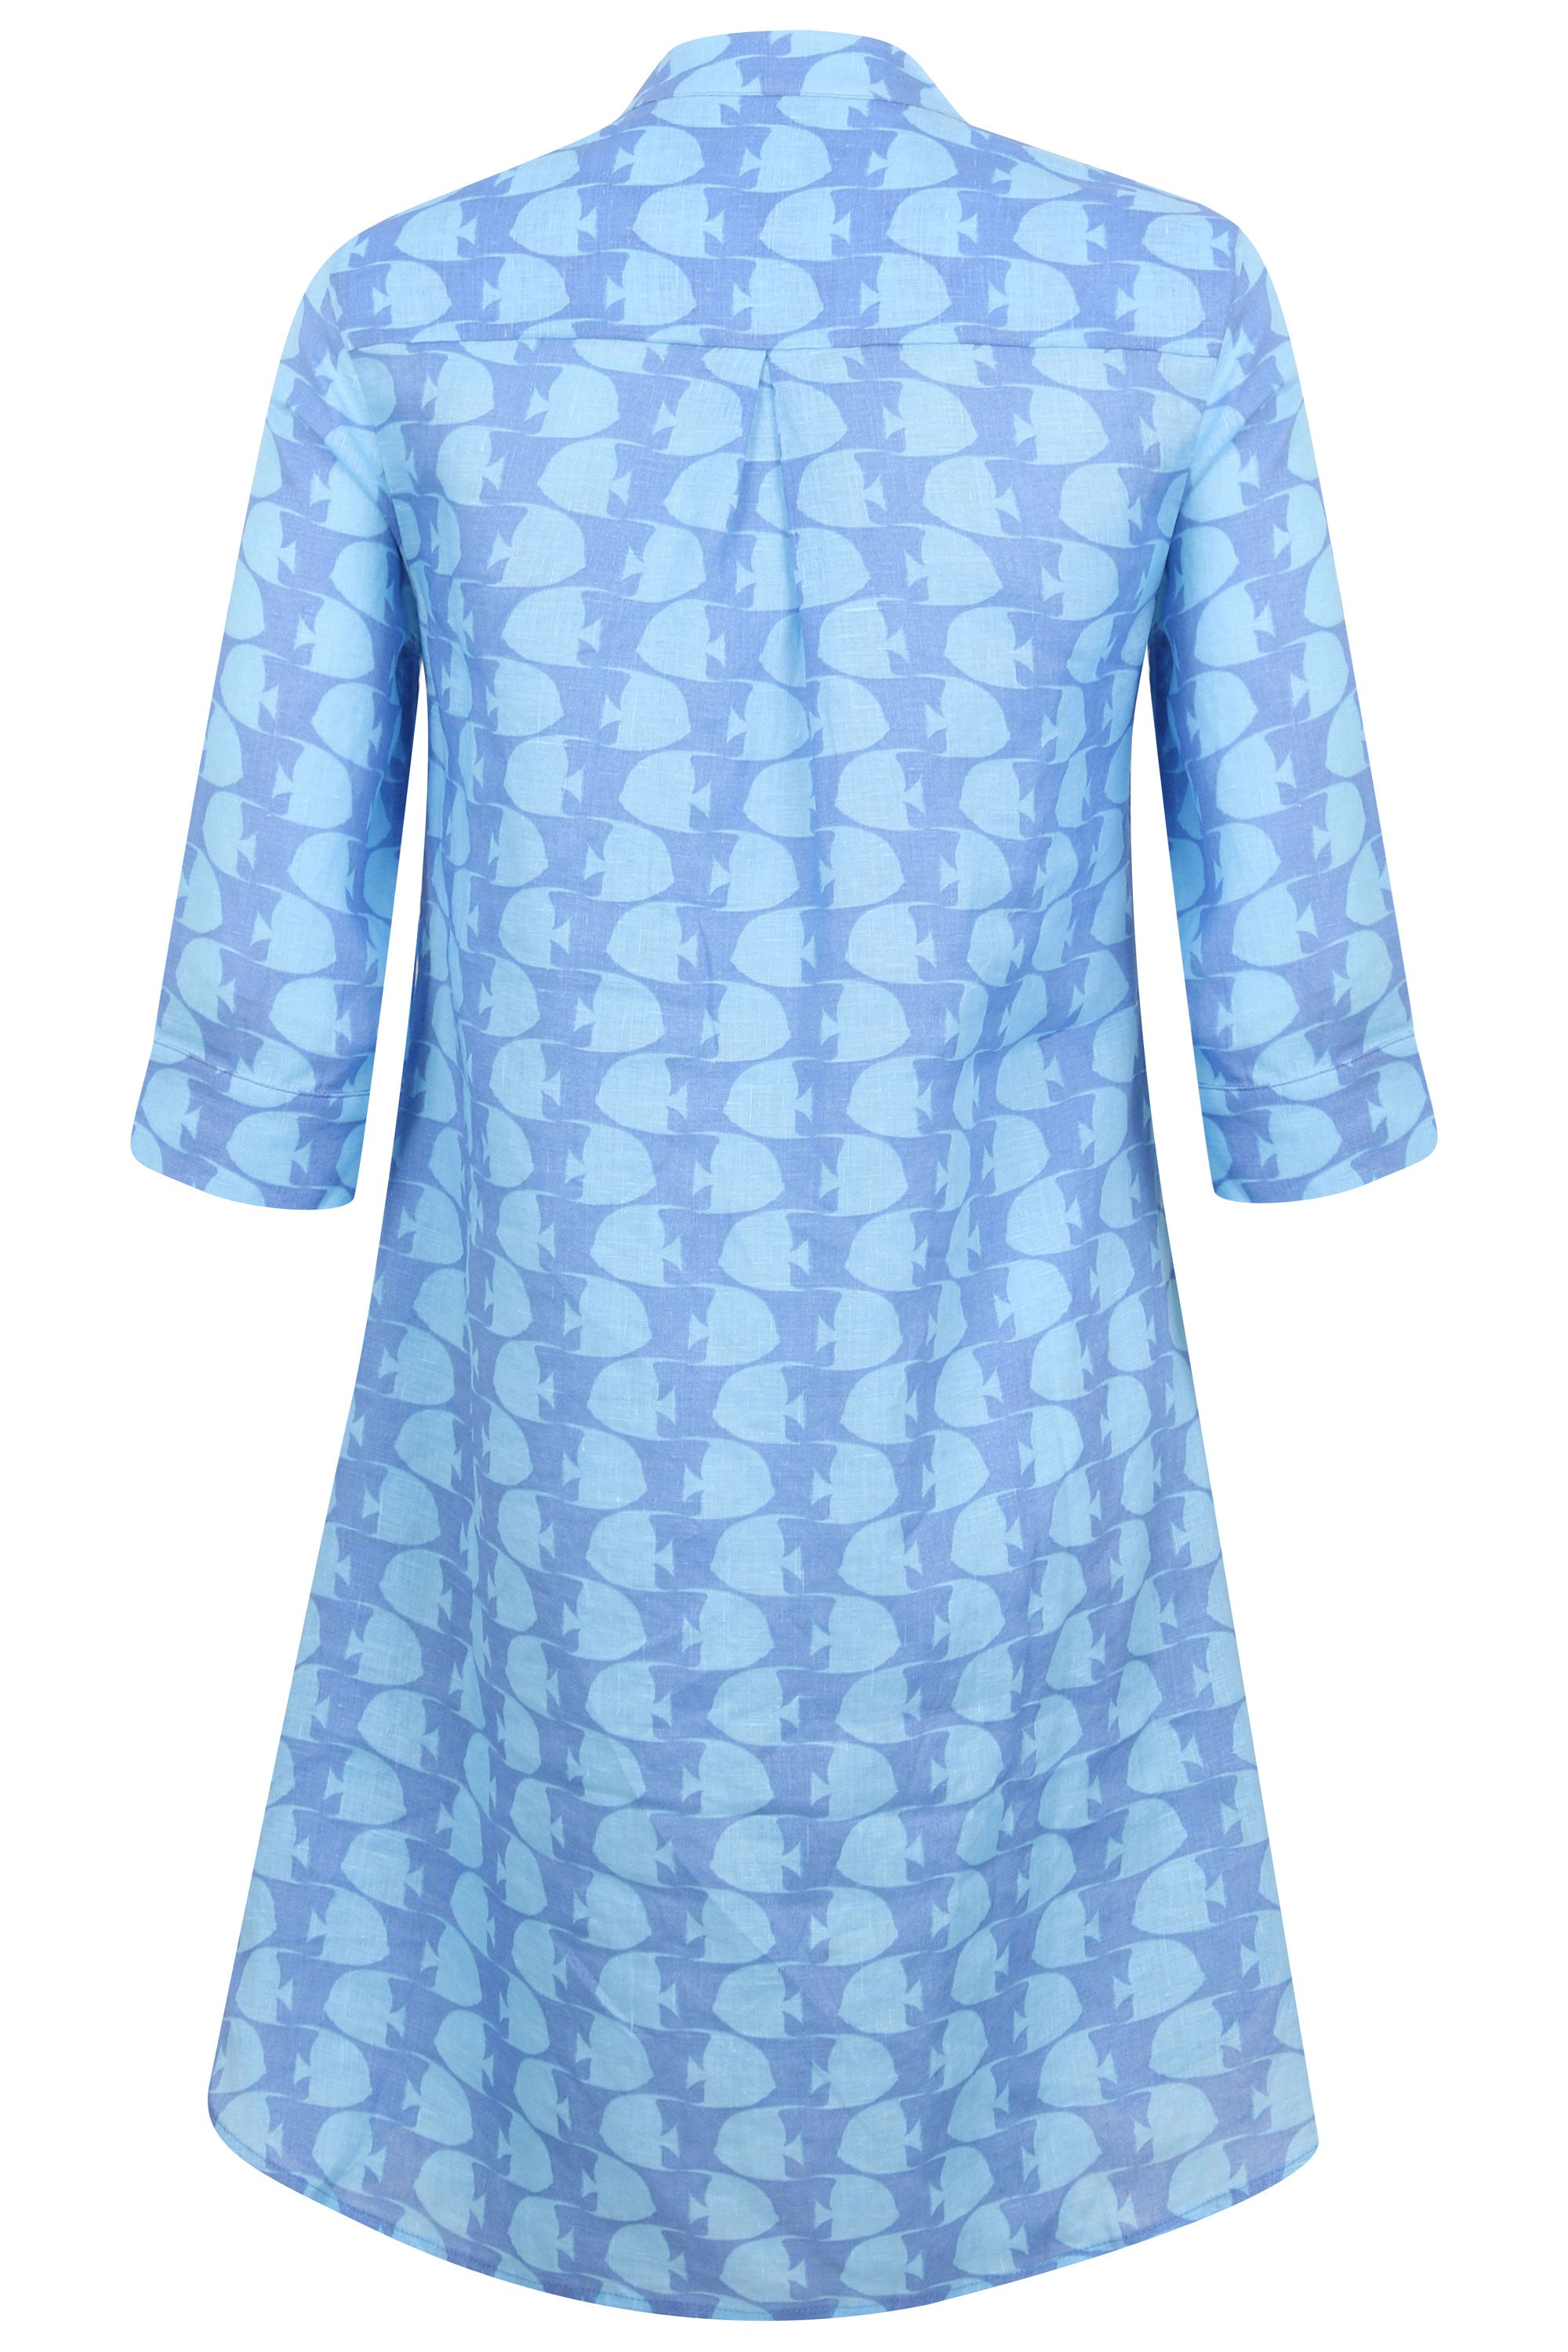 0179b95f65 ... designer vacation wear by Lotty B Mustique. Womens Linen Flared Dress:  FISH - TURQUOISE back